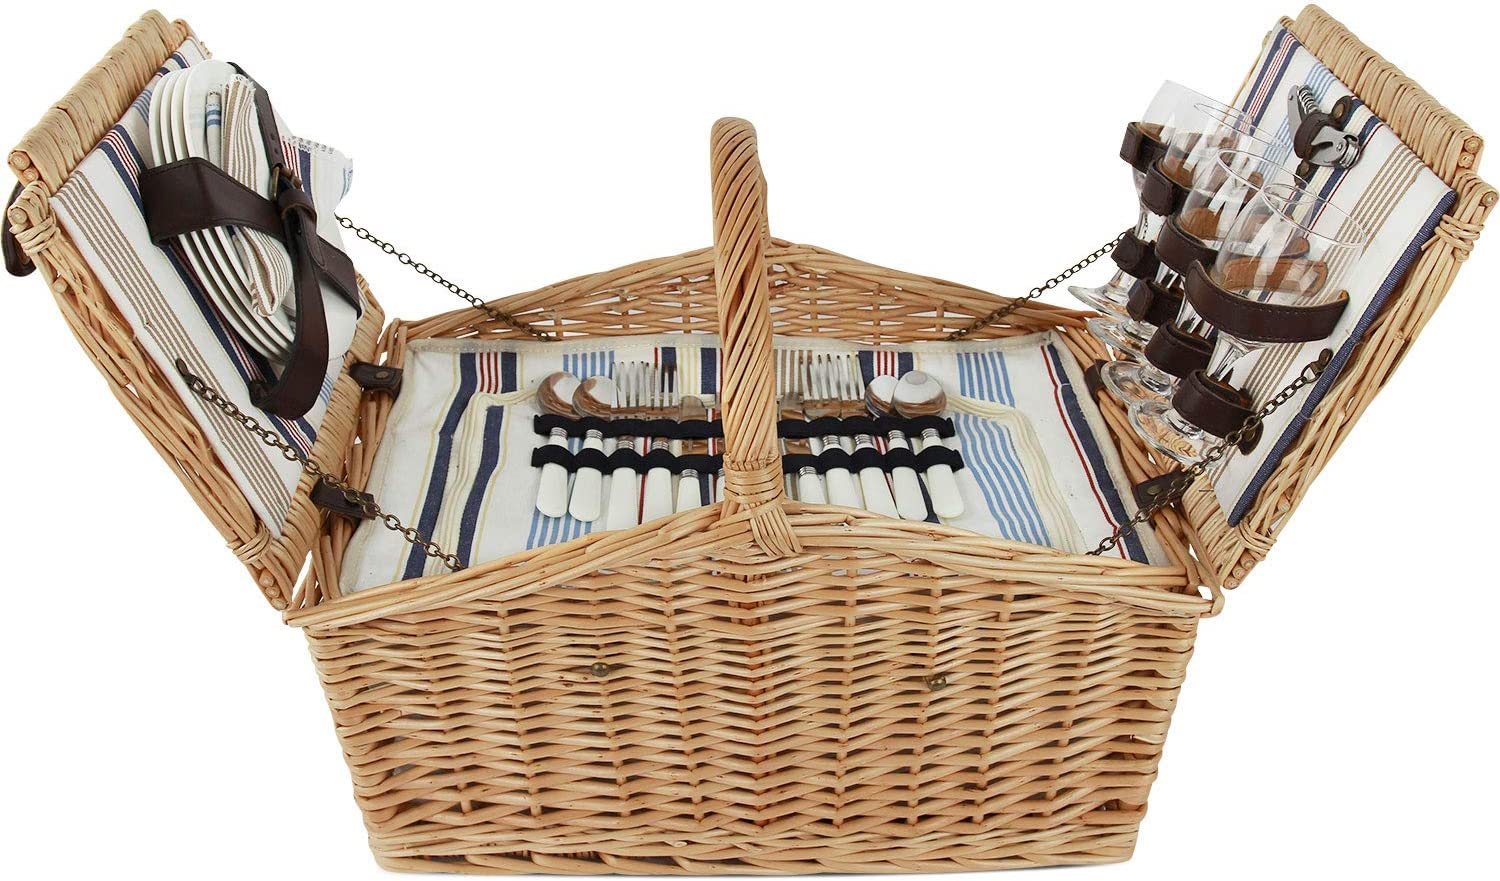 ZORMY Huntsman Willow Picnic Basket for 4 Persons with Insulated Cooler Large Wicker Picnic Basket with Service for 4